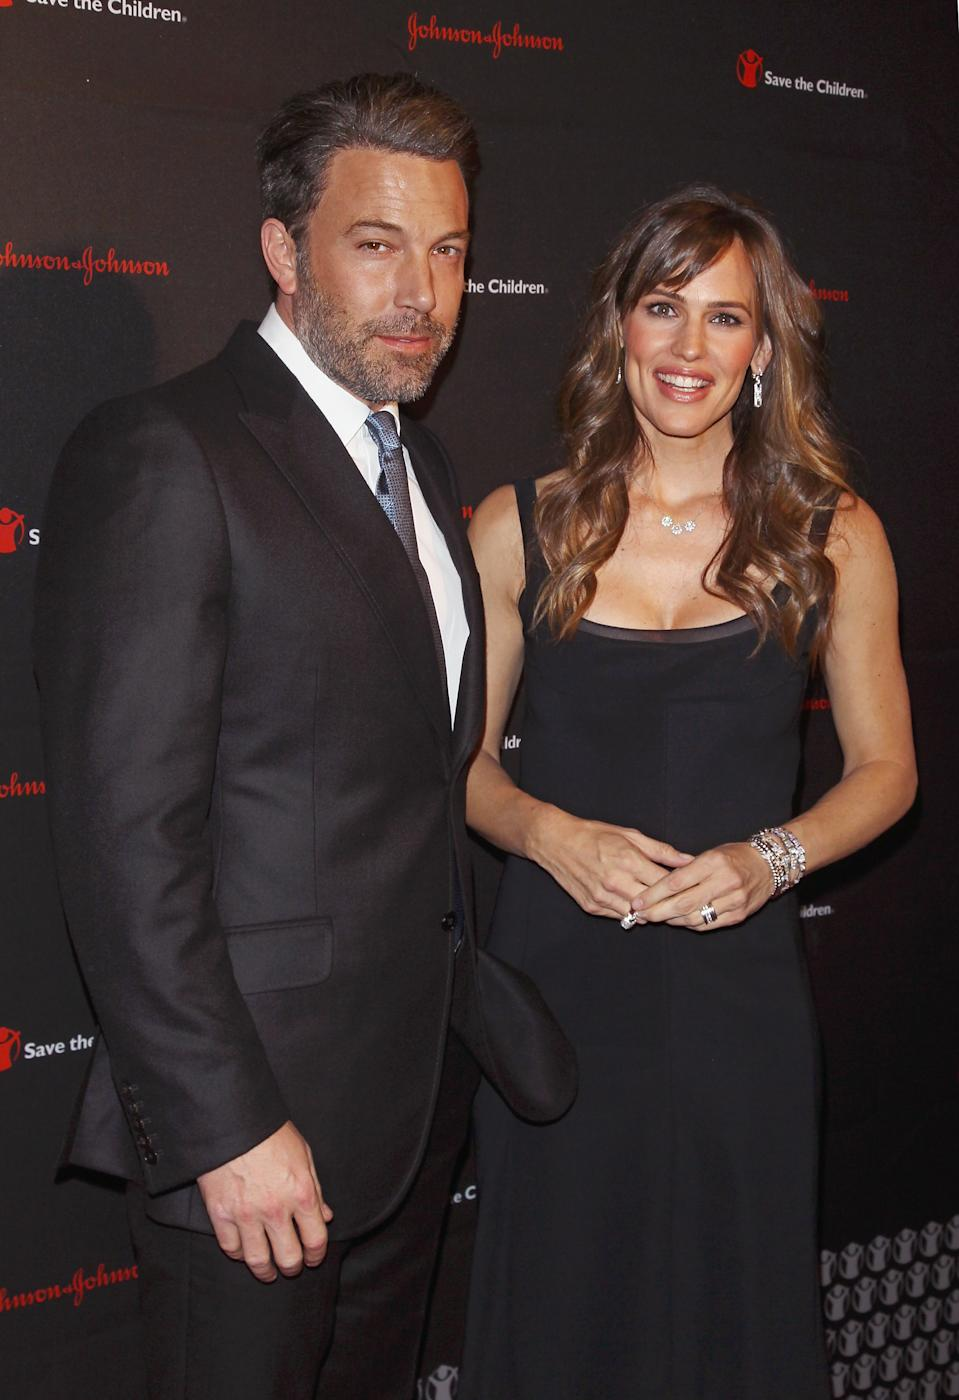 Ben Affleck and Jennifer Garner attend the 2nd annual Save the Children Illumination Gala at the Plaza Hotel on November 19, 2014 in New York City.  (Photo by Jim Spellman/WireImage)